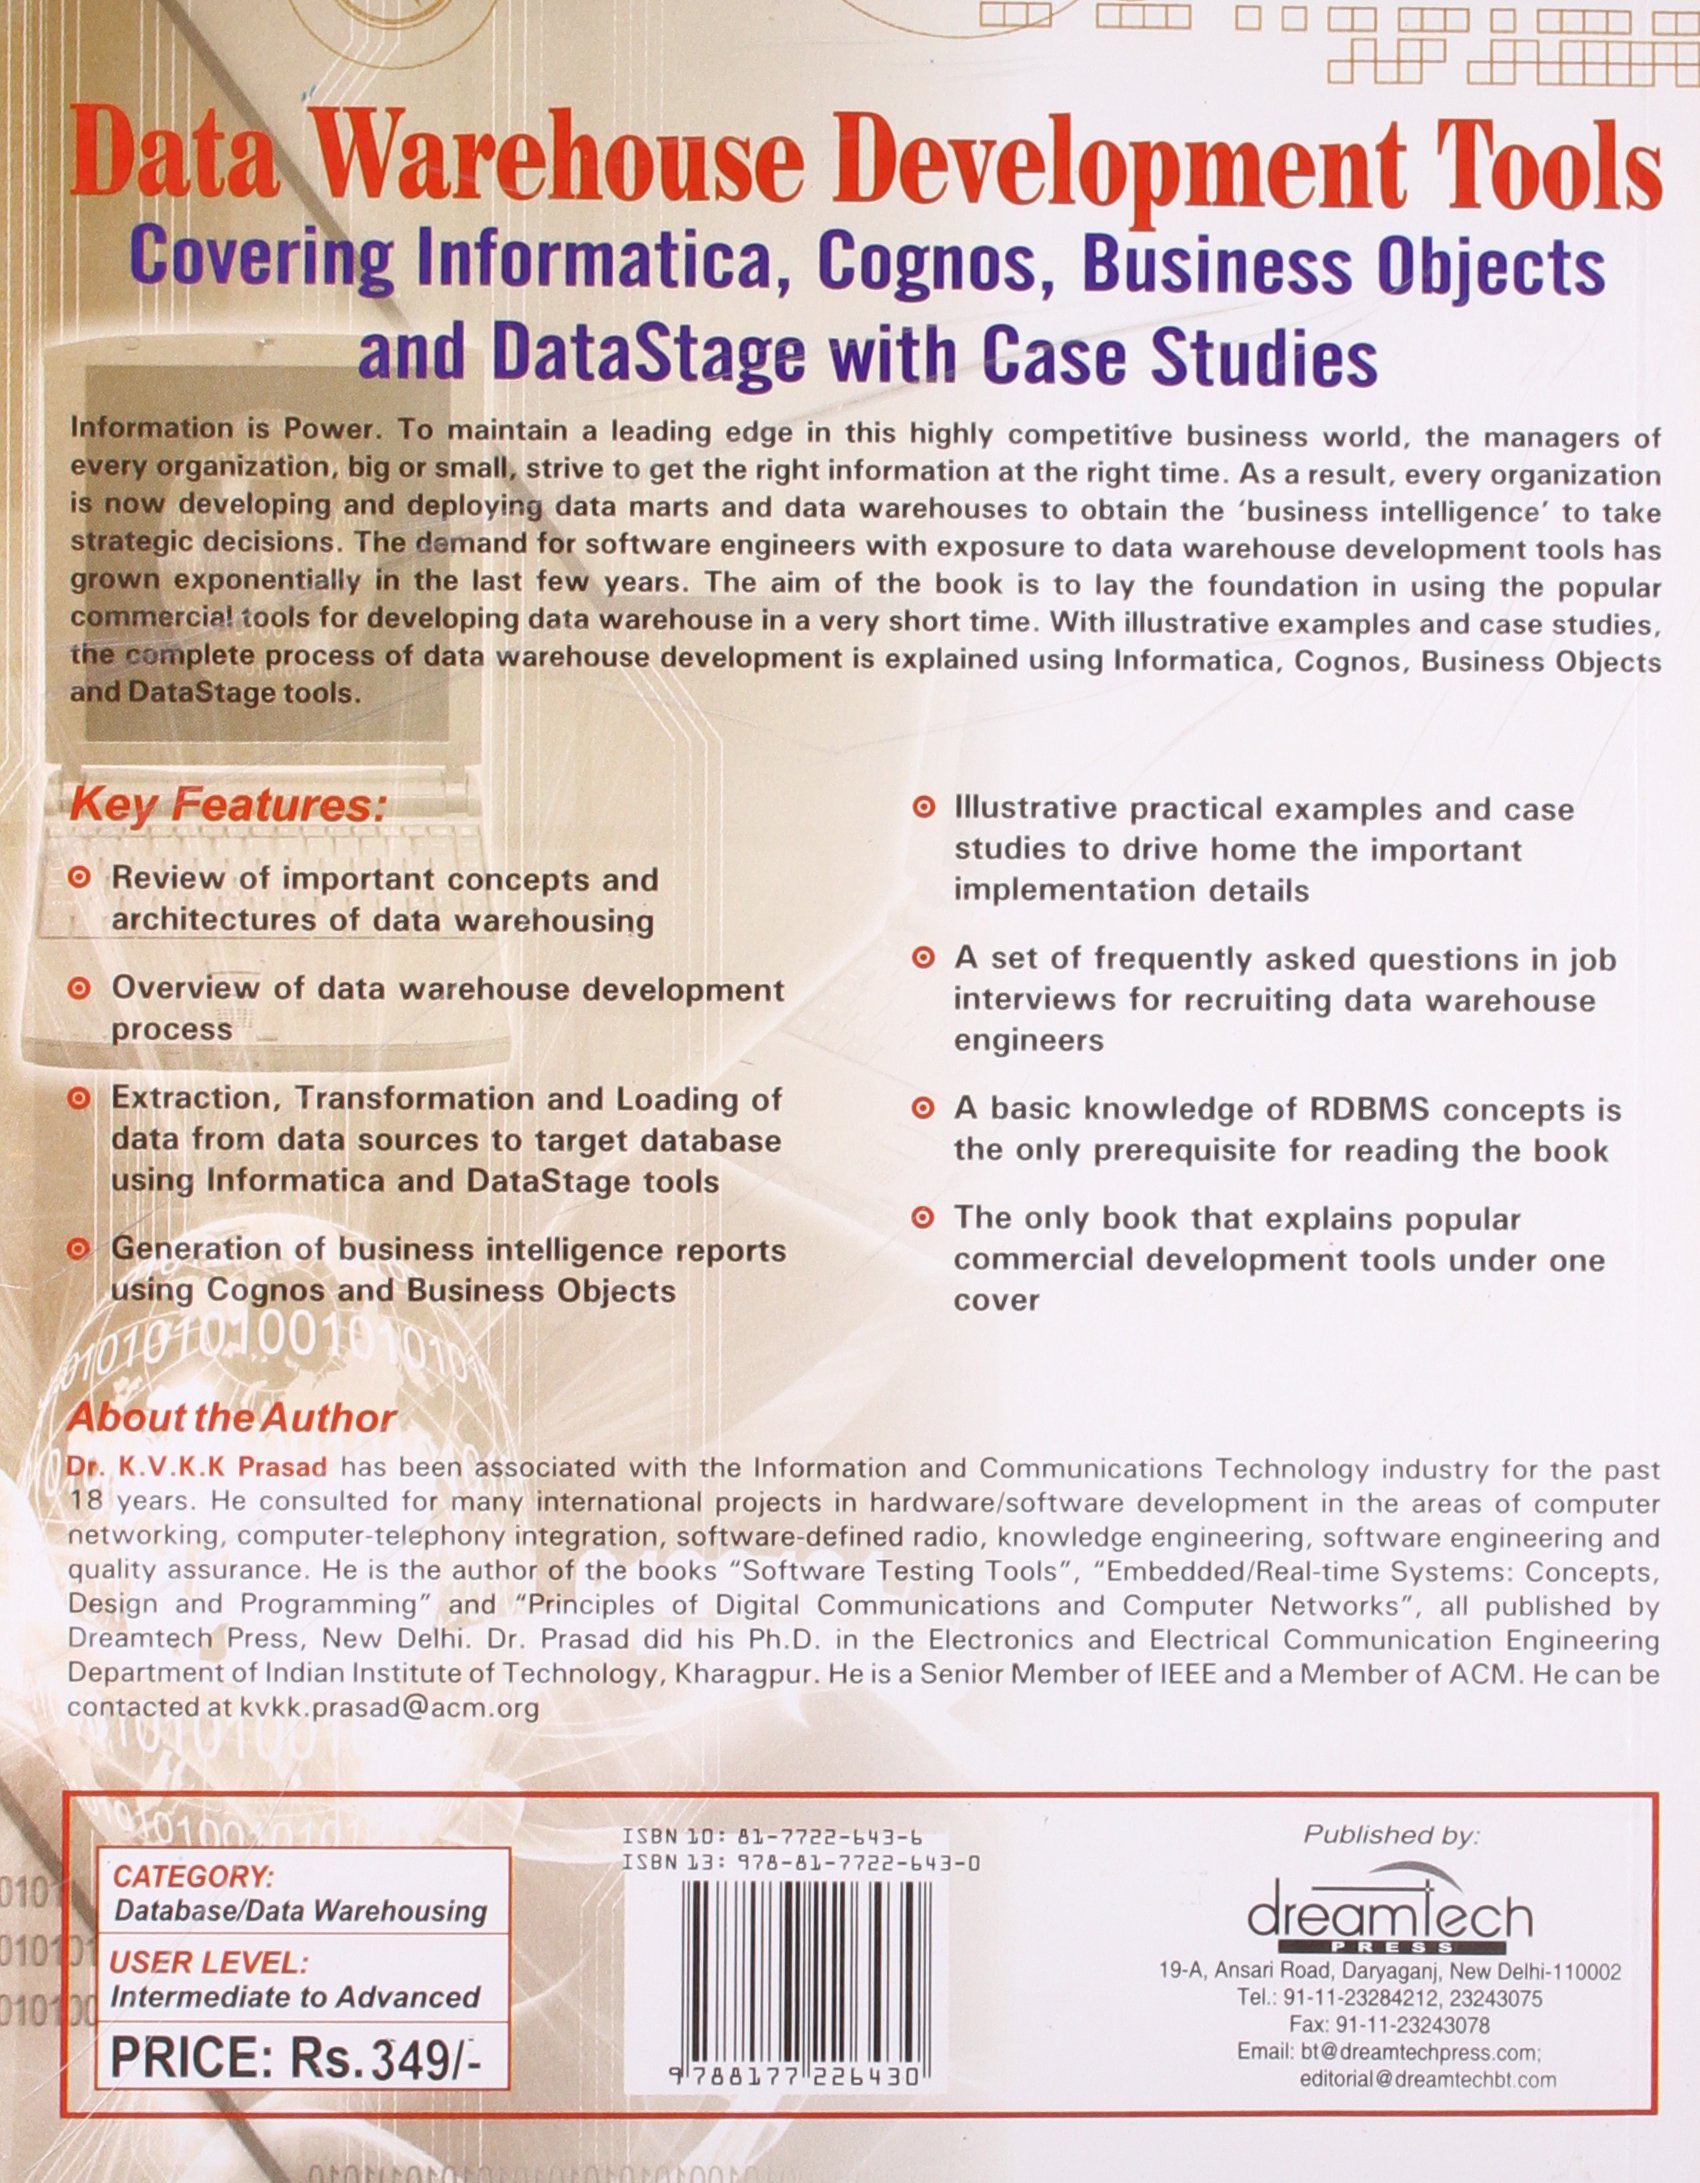 Buy Data Warehouse Development Tools Book Online at Low Prices in